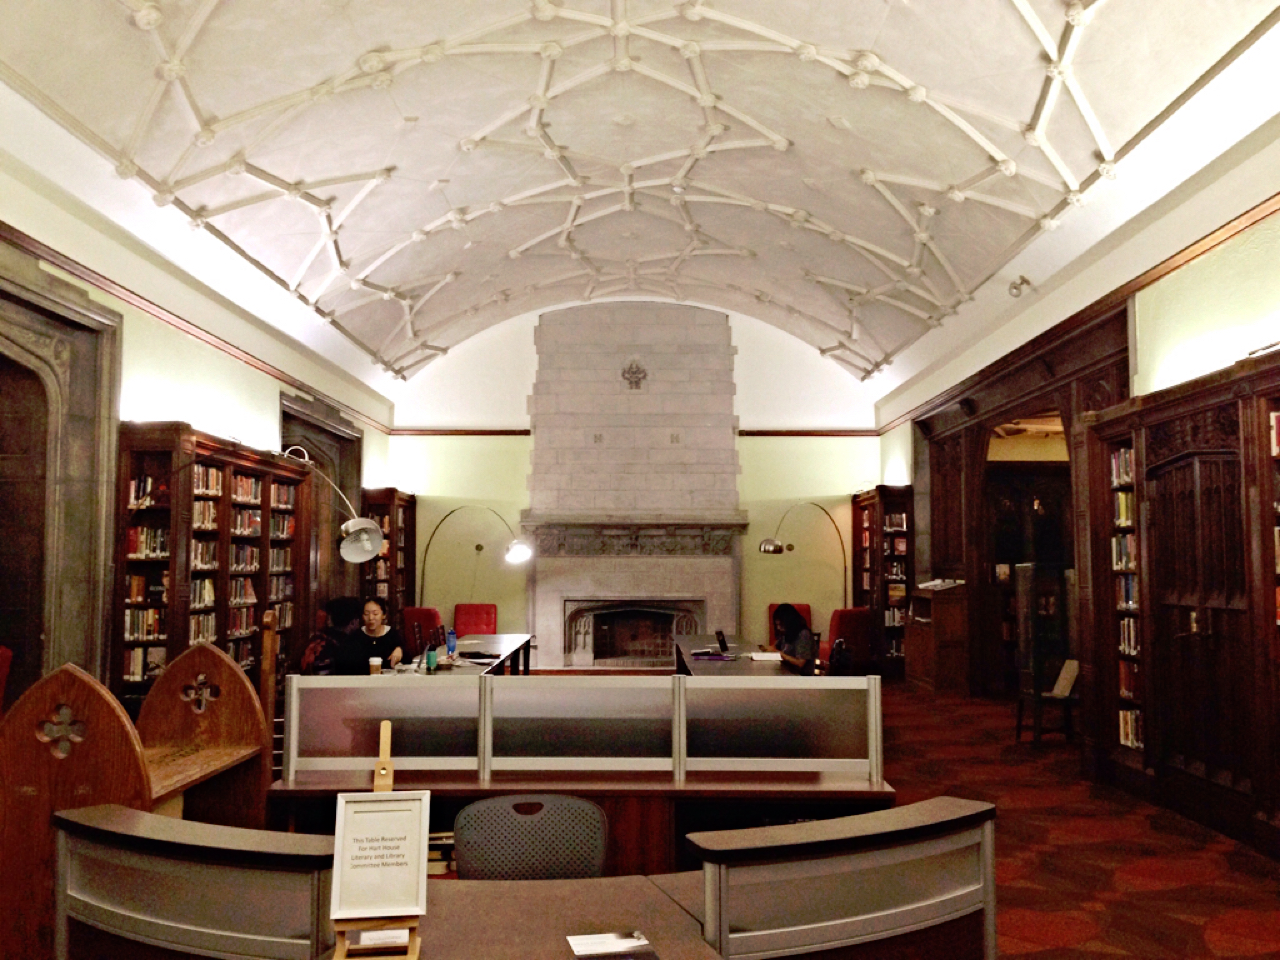 A photograph of Hart House Library; with a cathedral ceiling and wall to wall bookshelves.